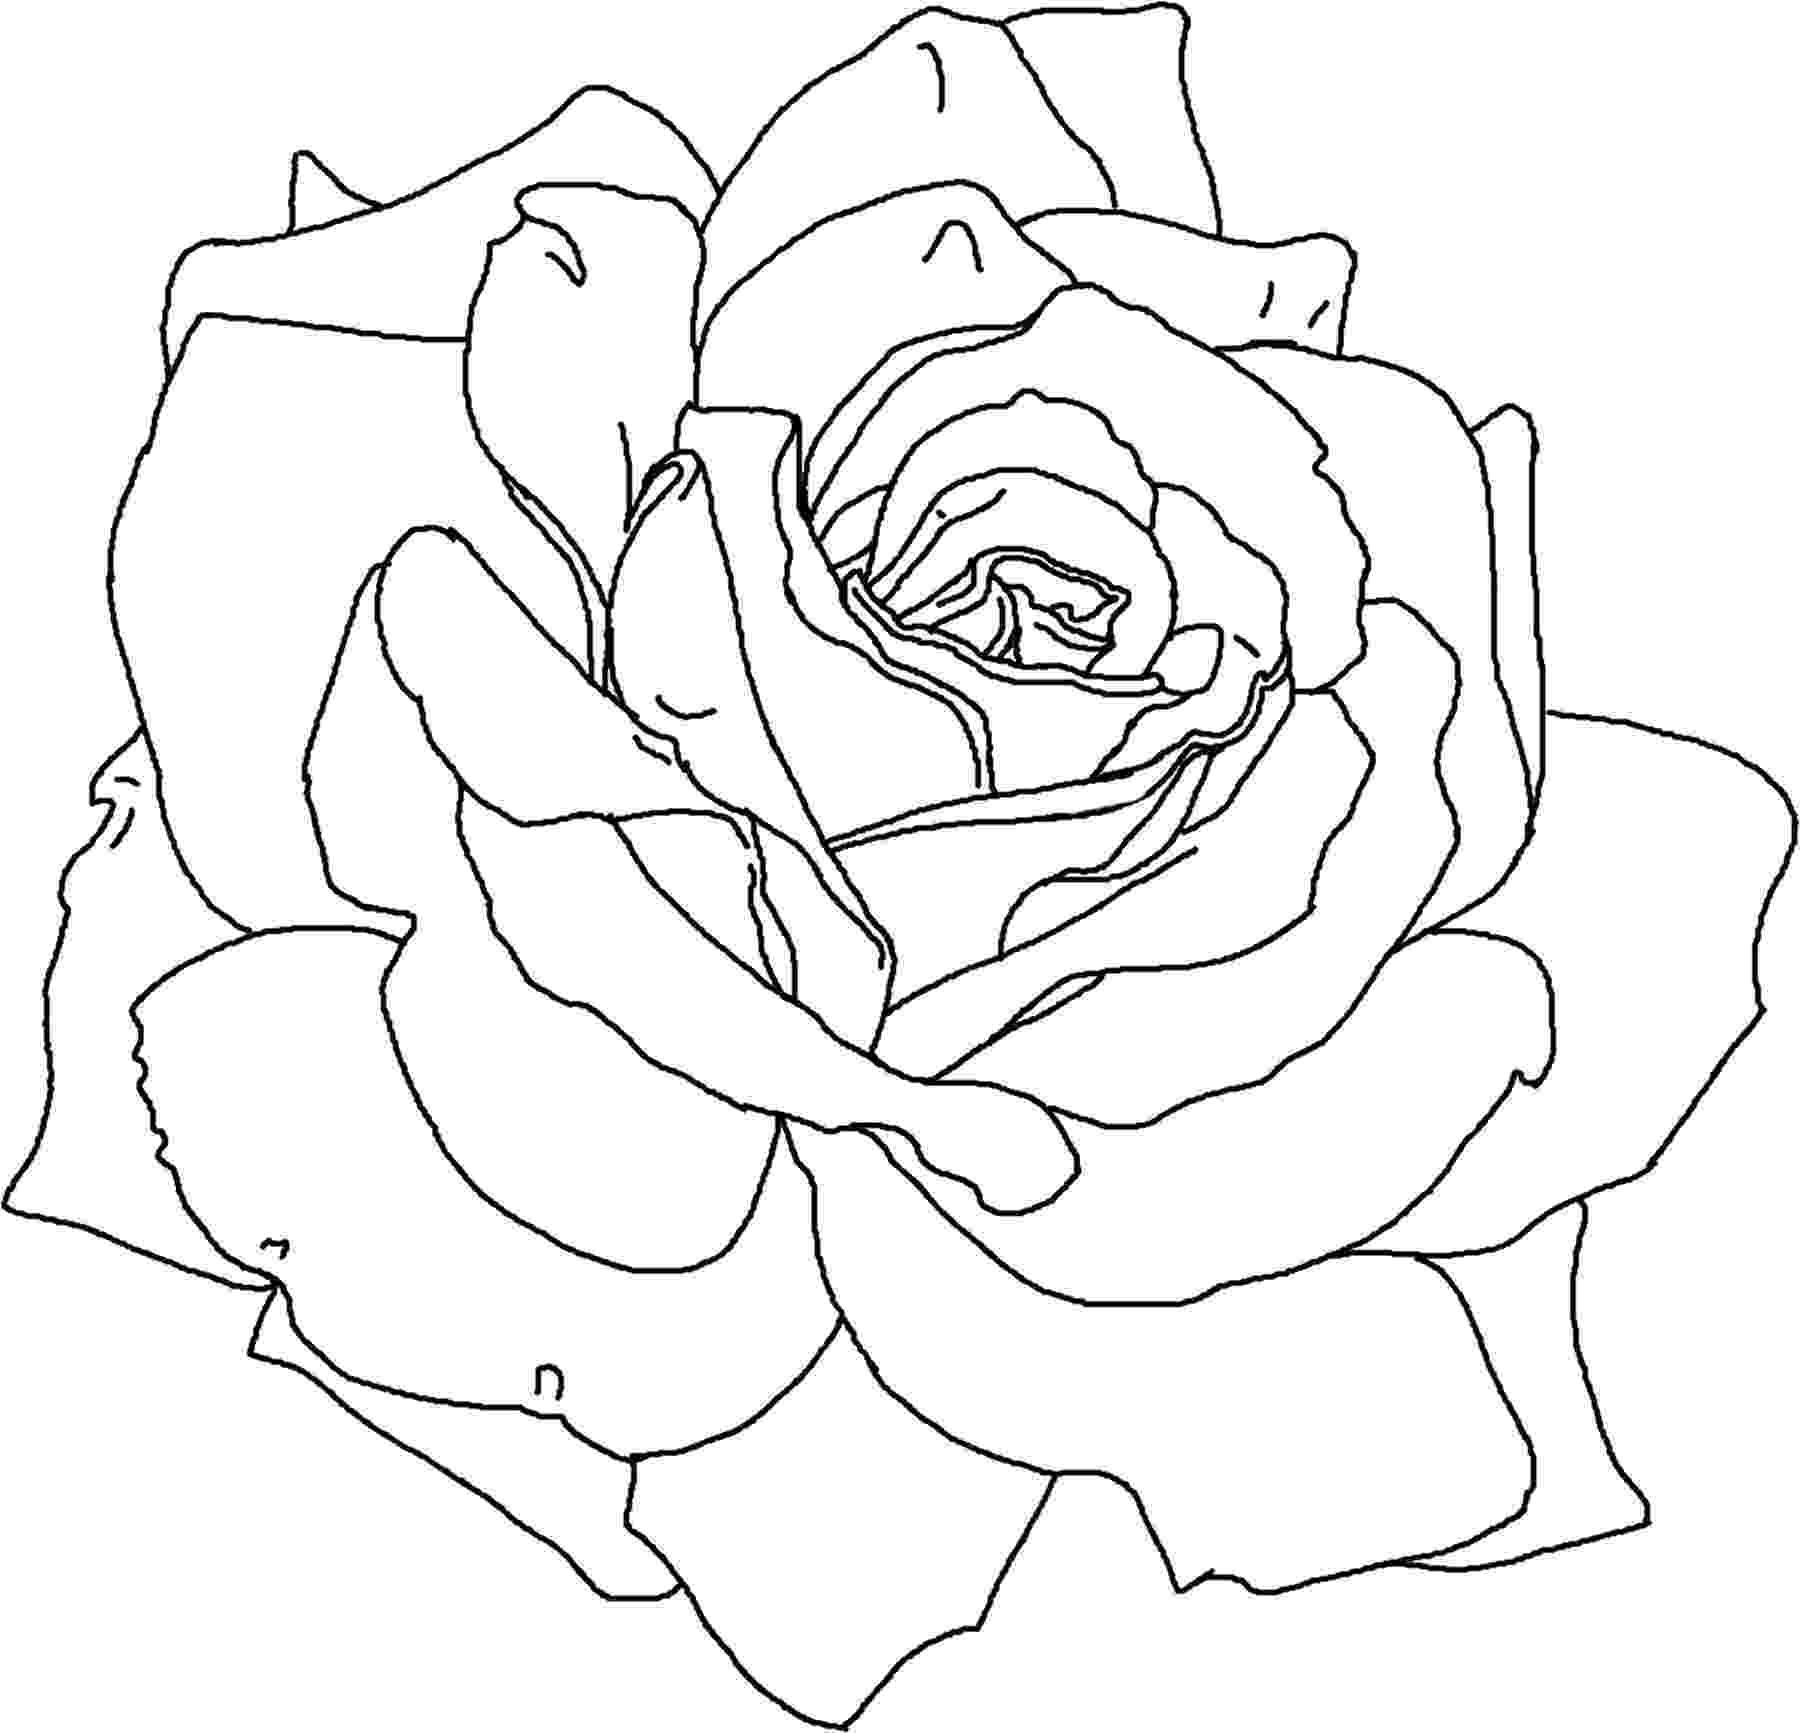 flowers you can print and color free printable flower coloring pages for kids best flowers print can color and you